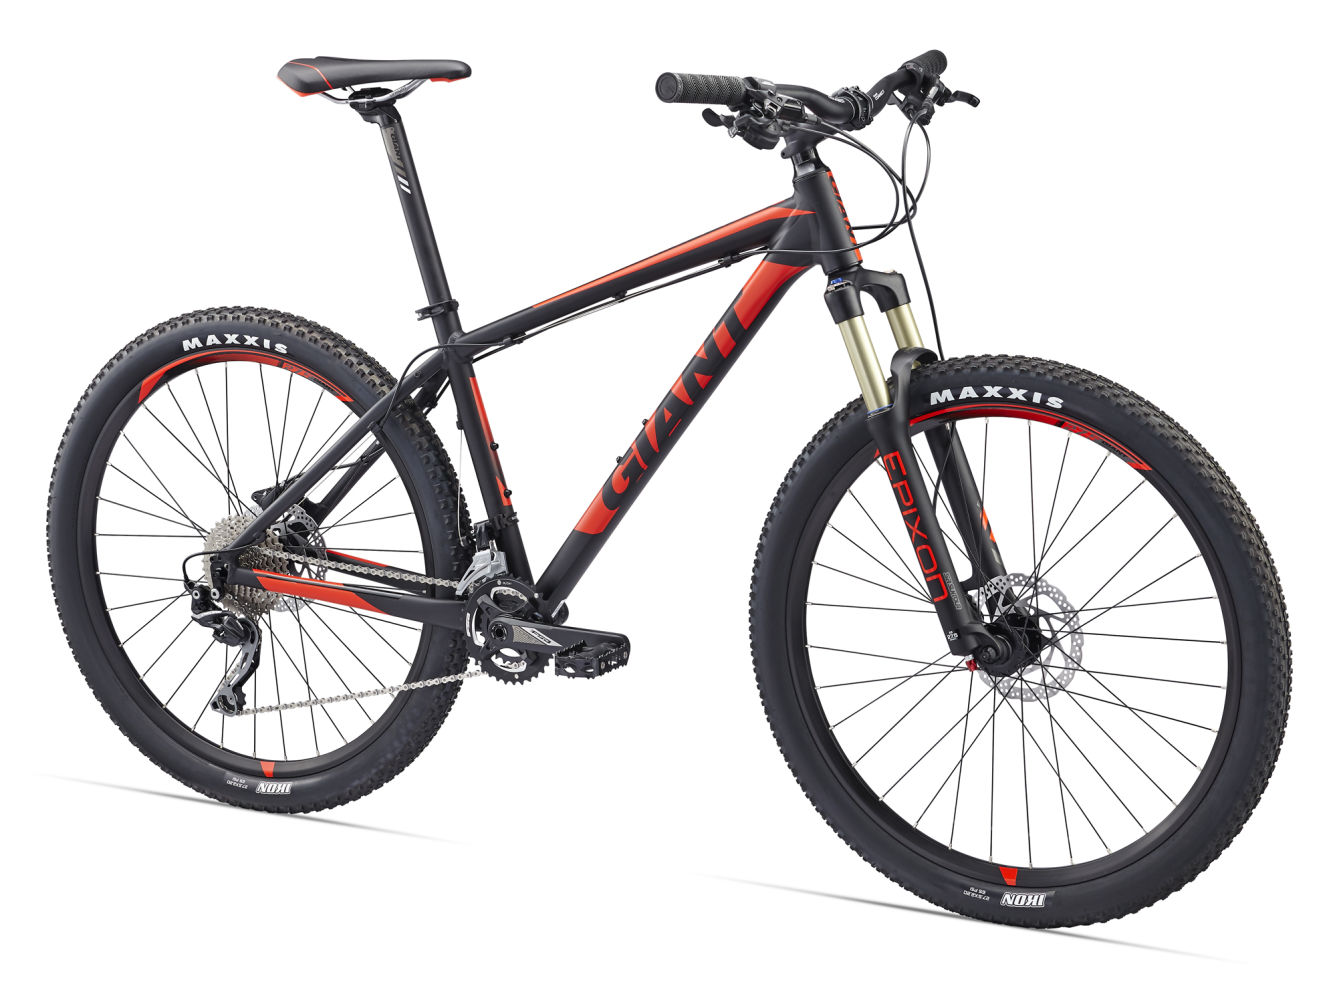 Talon 2017 Giant Bicycles United Kingdom